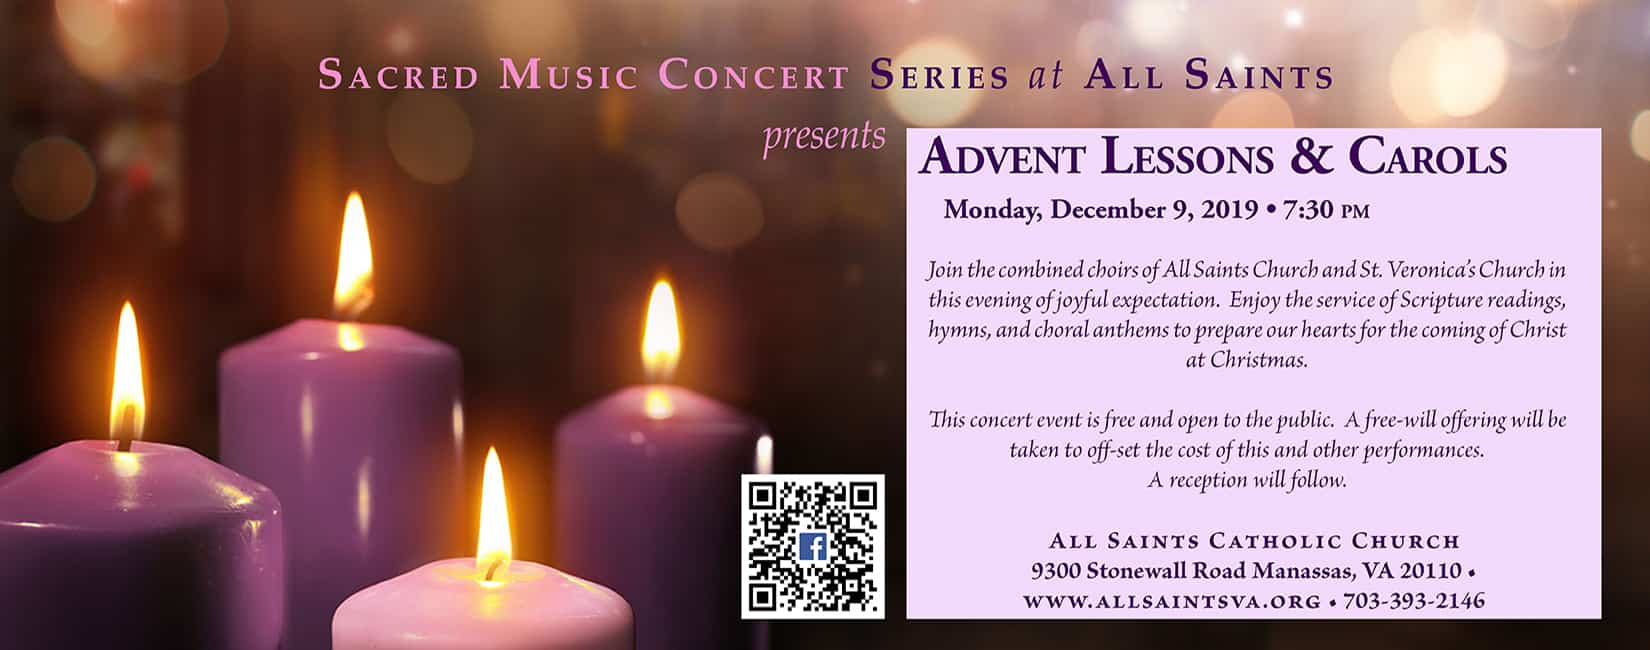 Advent Lessons & Carols